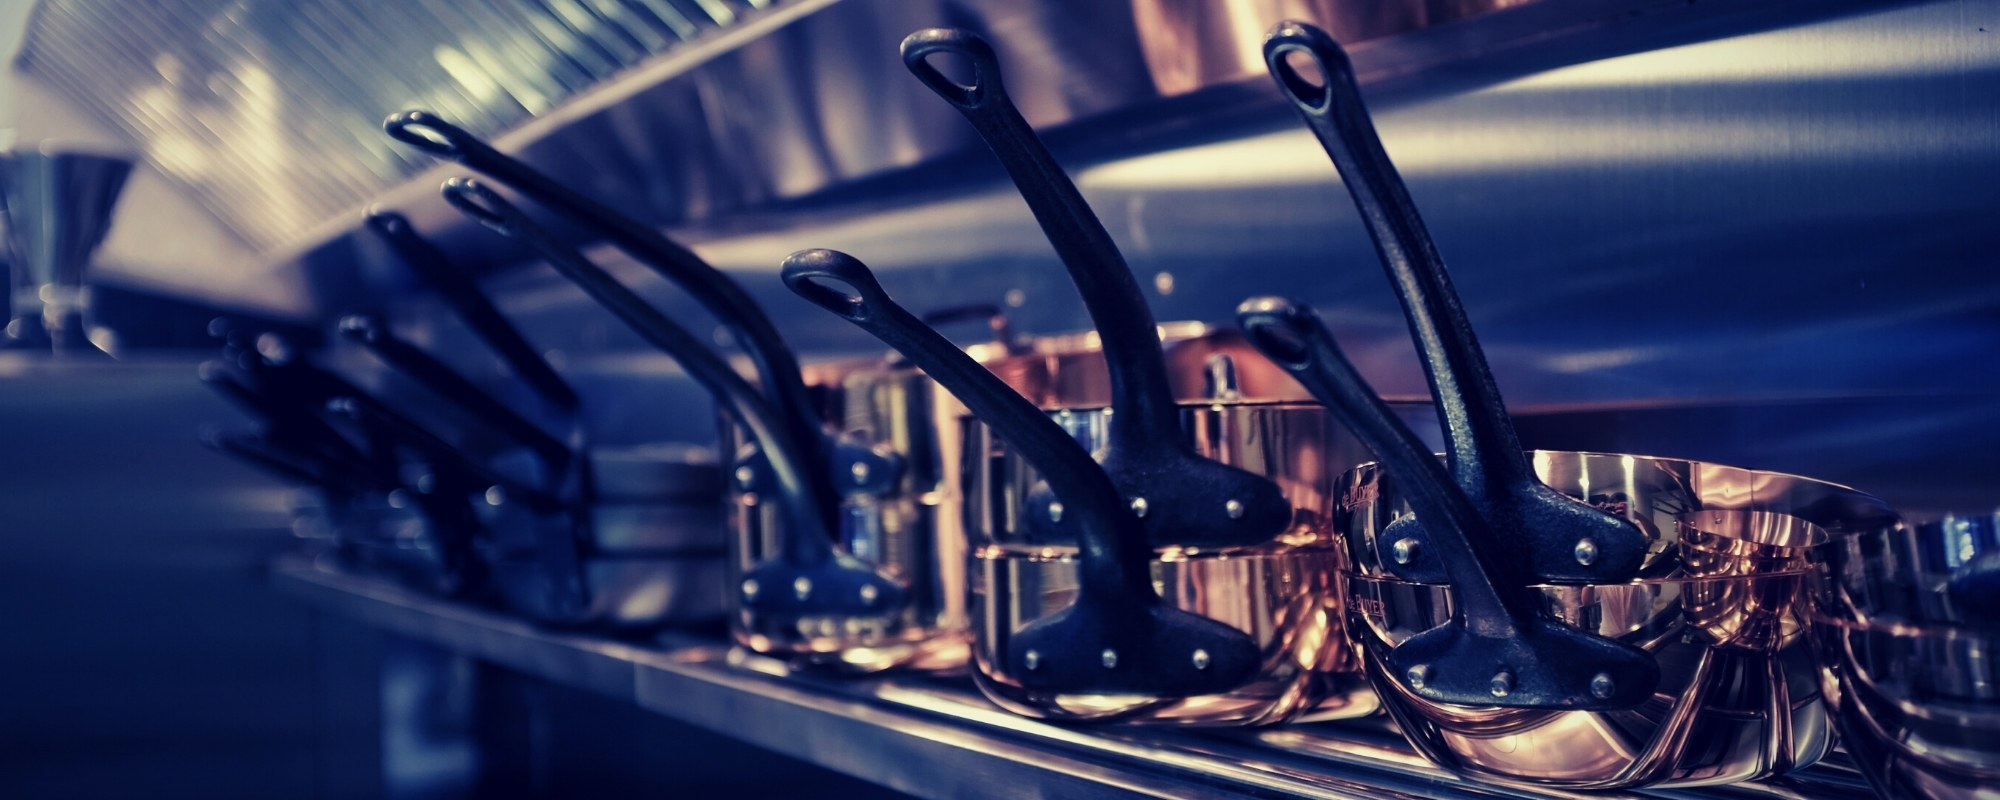 DE BUYER Inocuivre | Copper cookware cast-iron handles